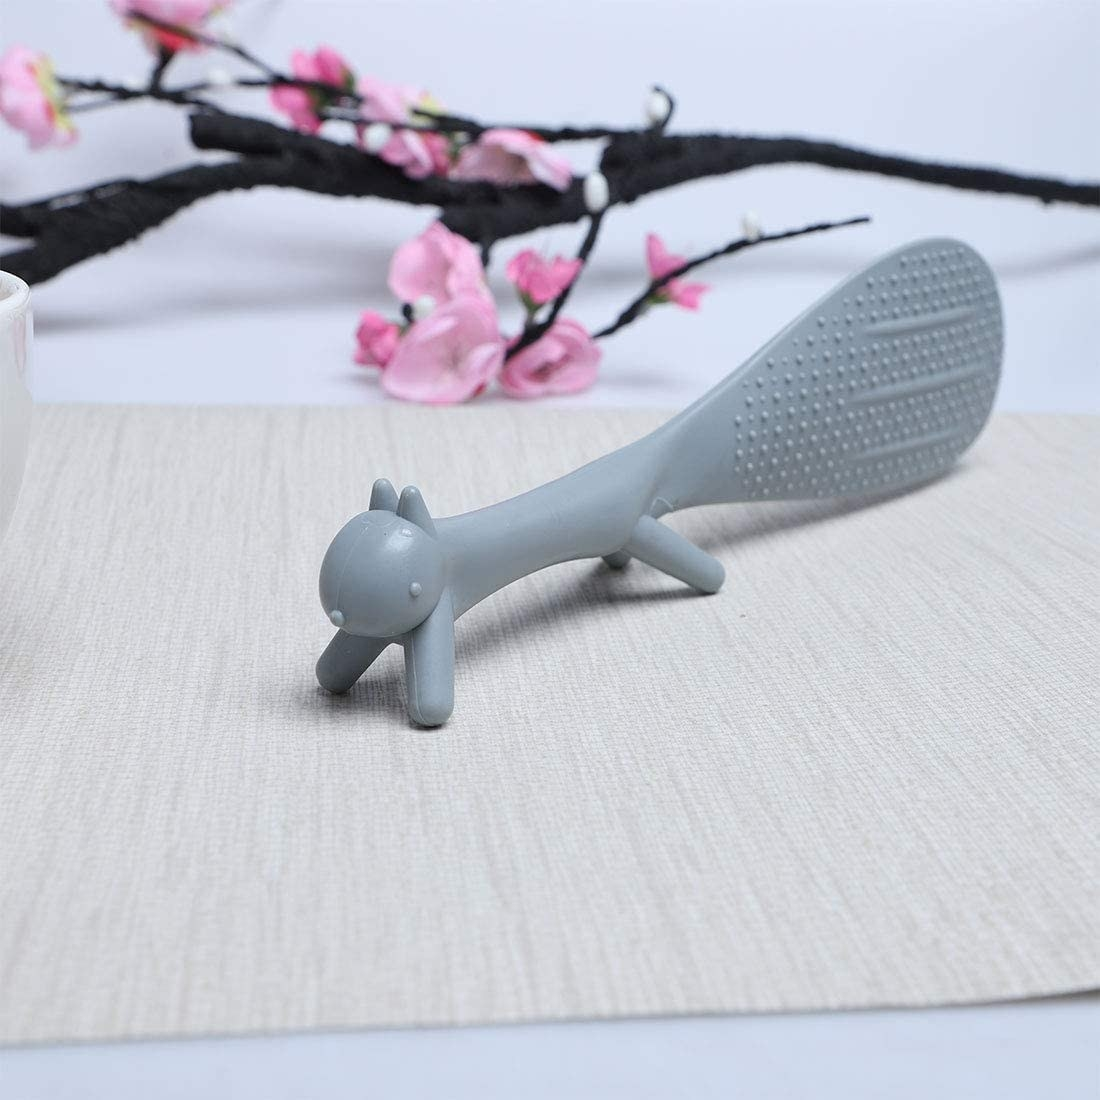 A close up of the squirrel shaped rice scoop placed neatly on a tabletop